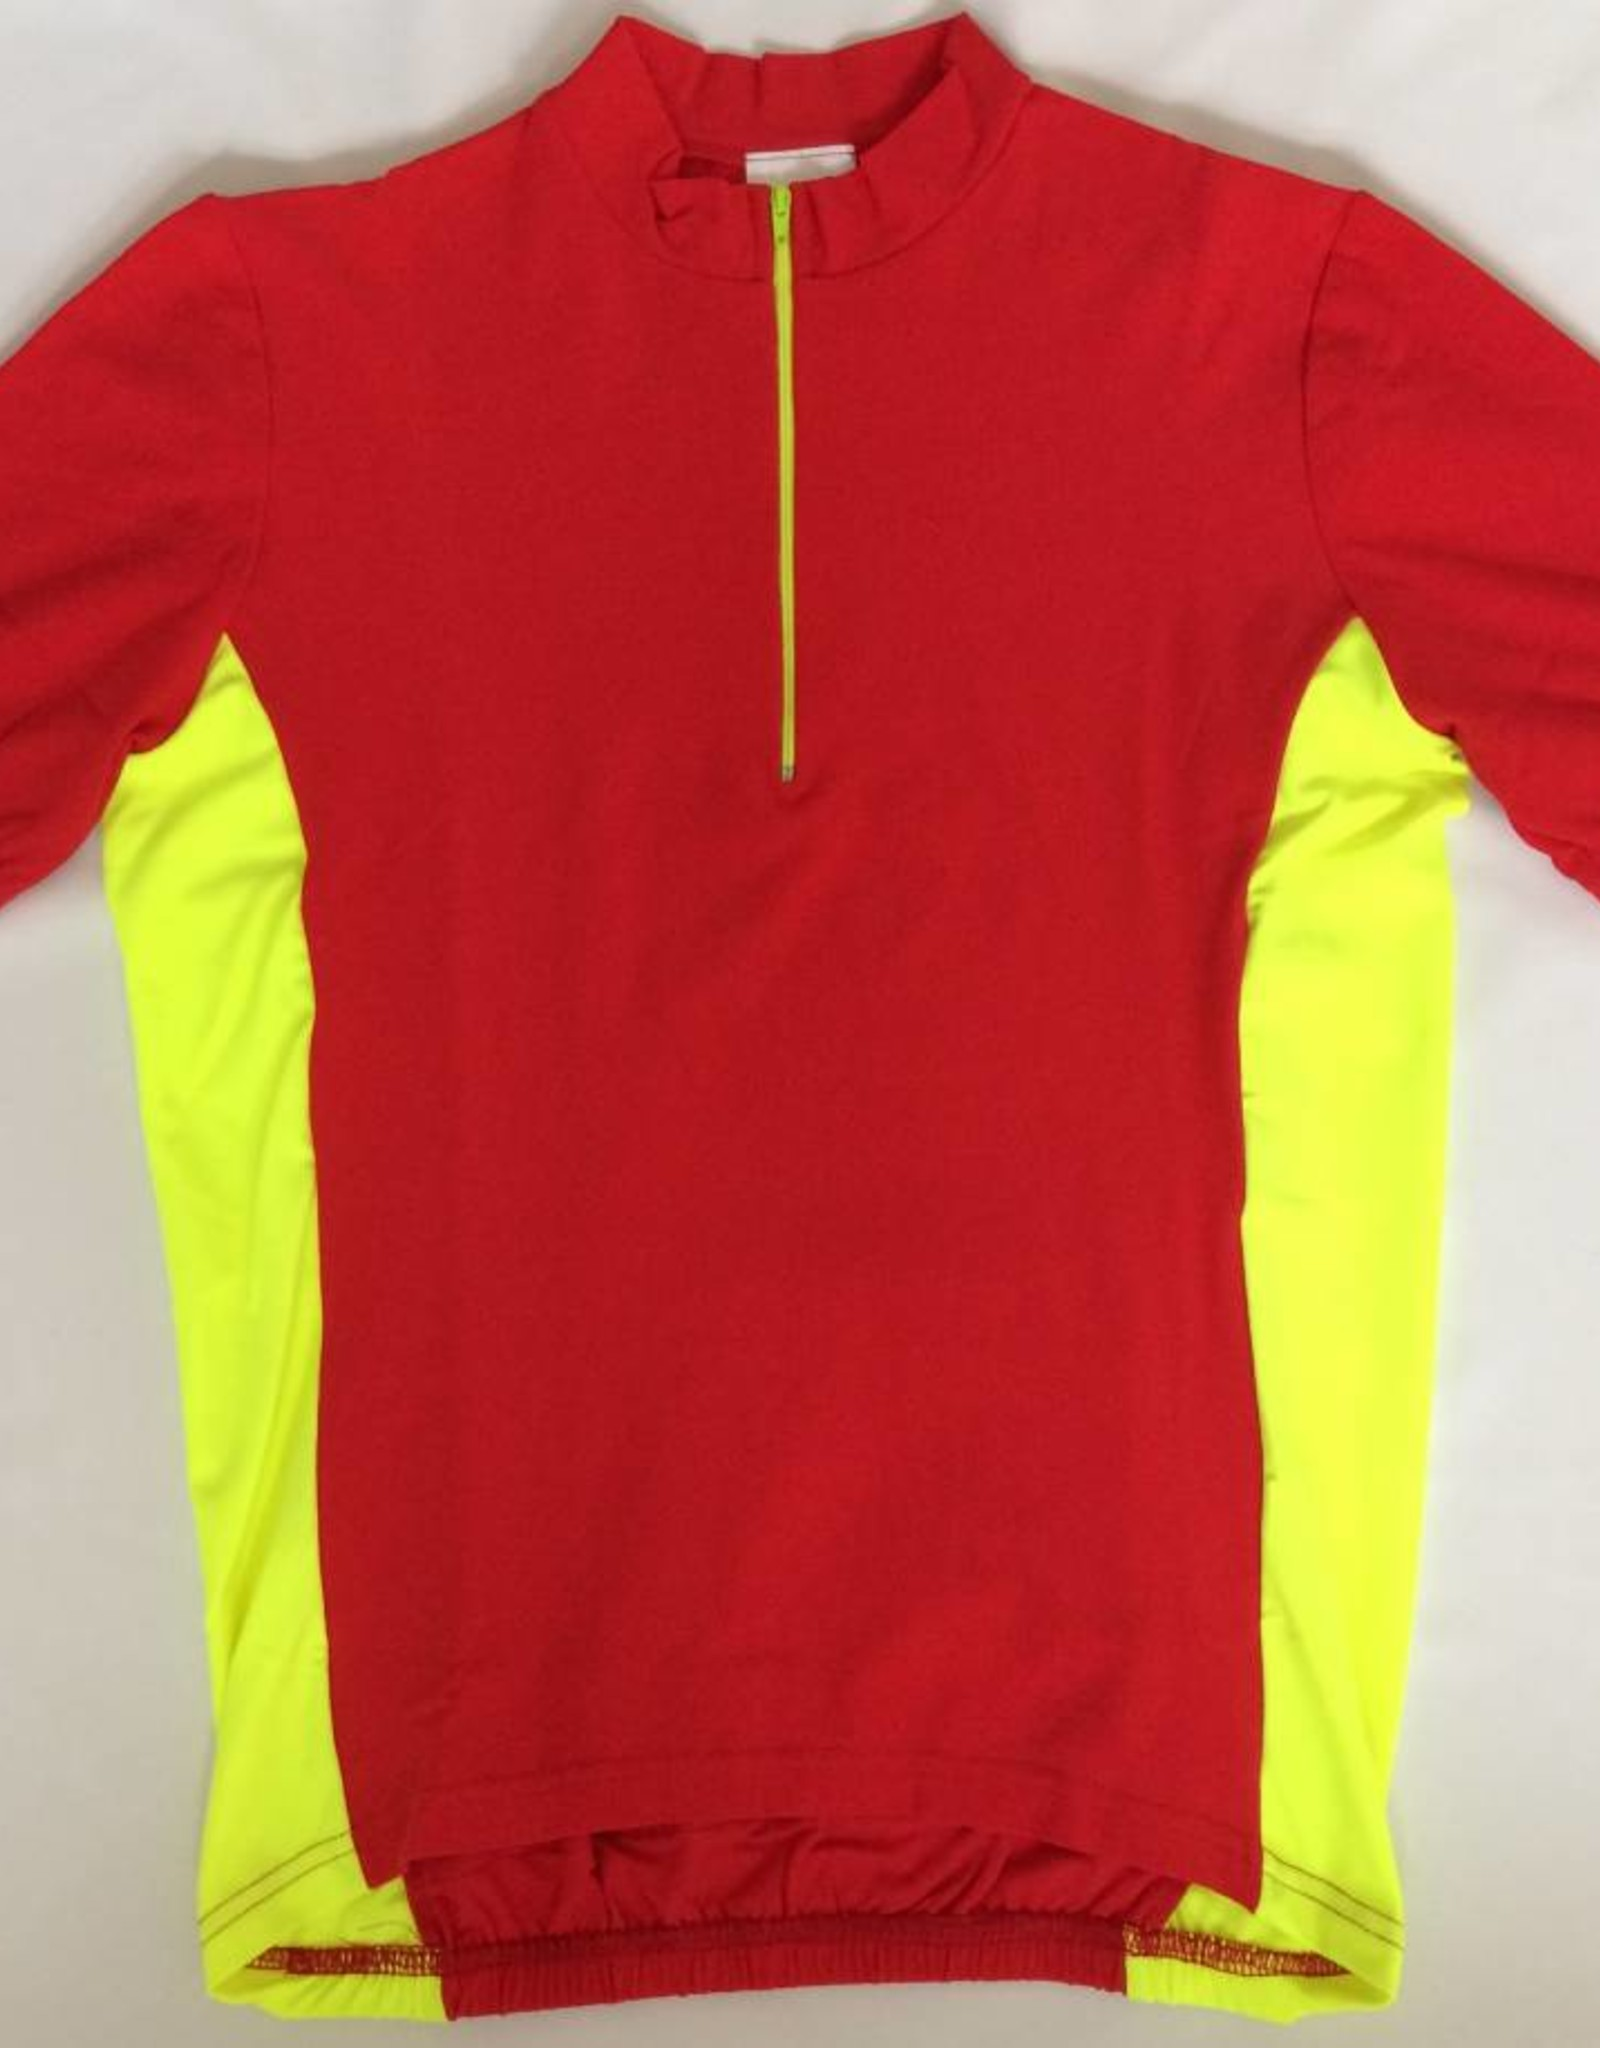 Tudor TS550P Red/Yellow Short Sleeved Road Jersey